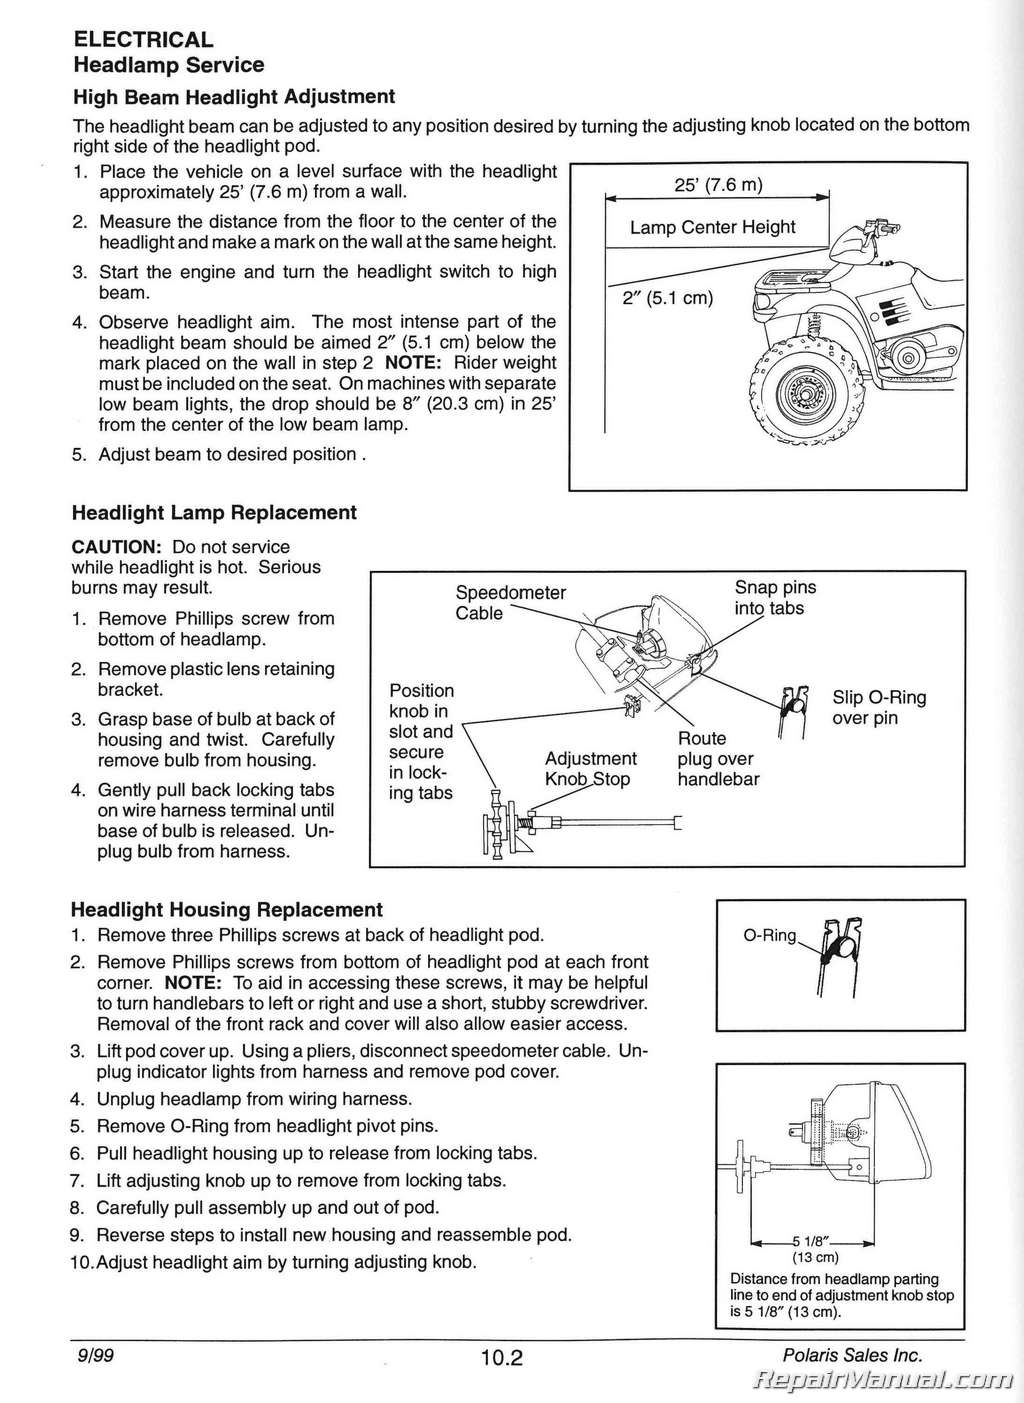 Wiring Diagram For 2000 Polaris Sportsman 500 : Wiring diagram polaris sportsman readingrat